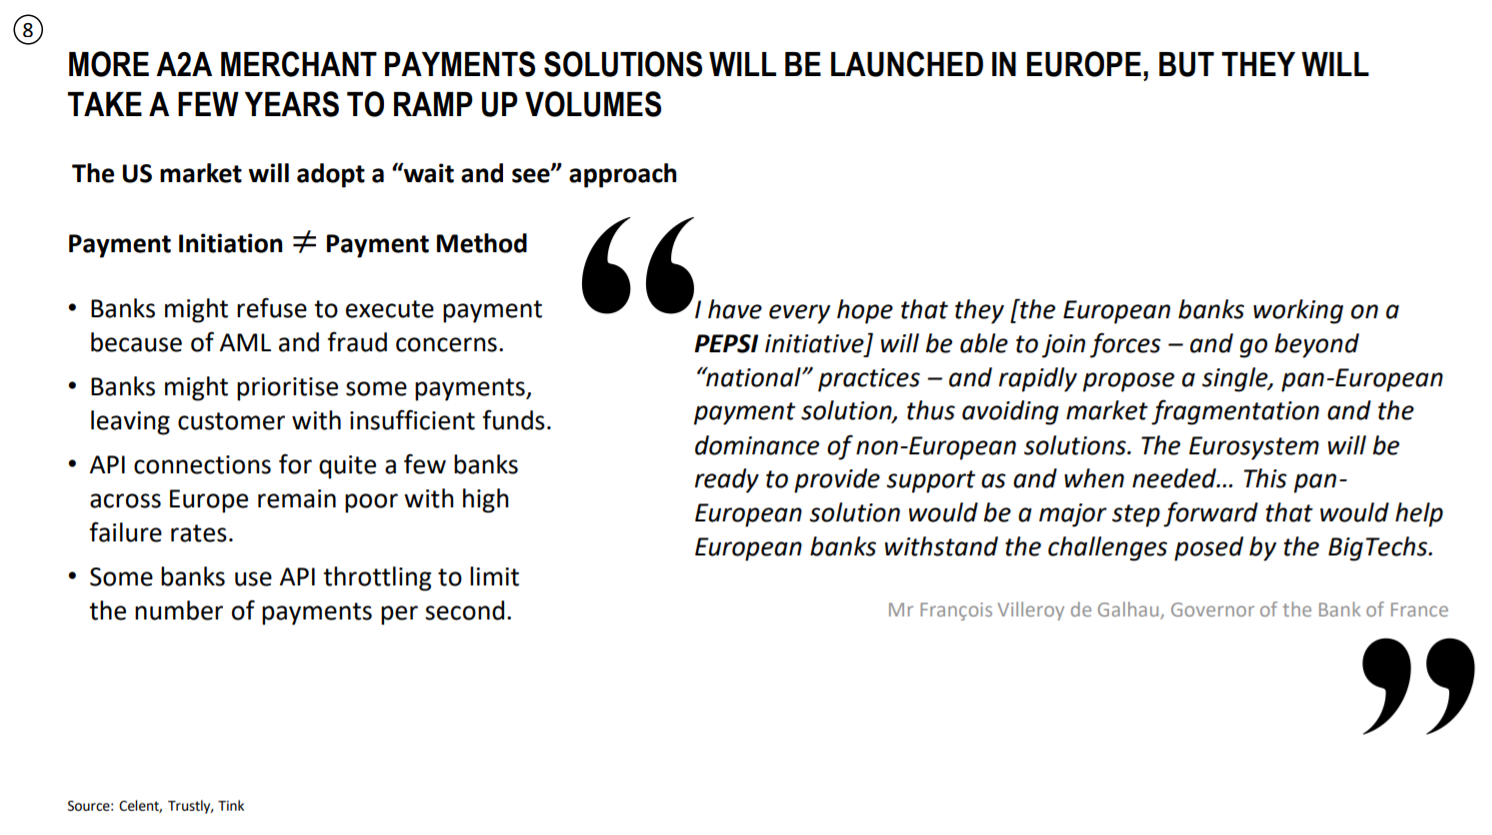 More A2A Merchant Payment Solutions to Launch in Europe